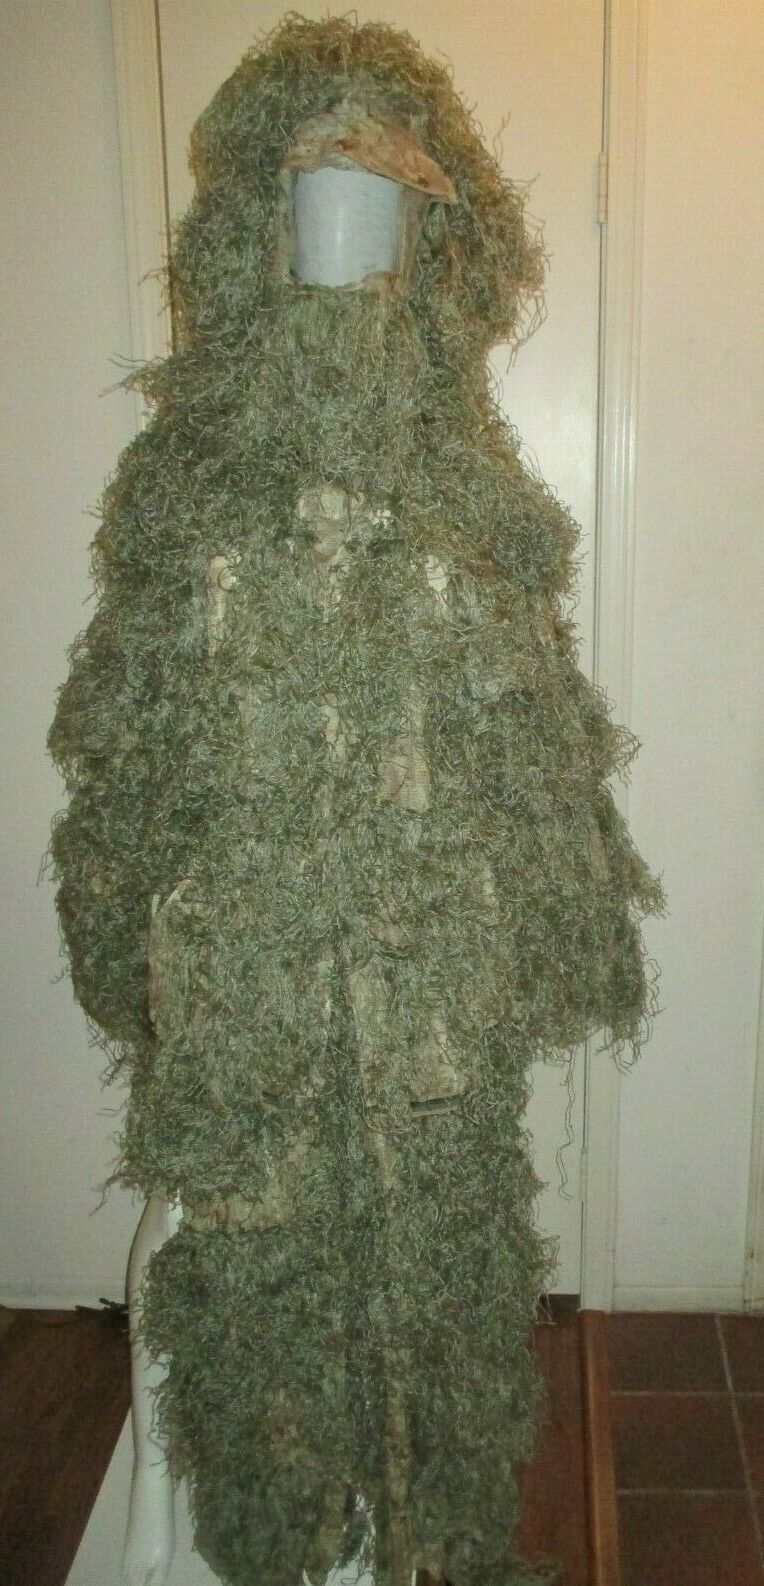 WARRIOR Ghillie Suit -Top,  Pants, Hat Camouflage Material & String Hunting Sport  no tax